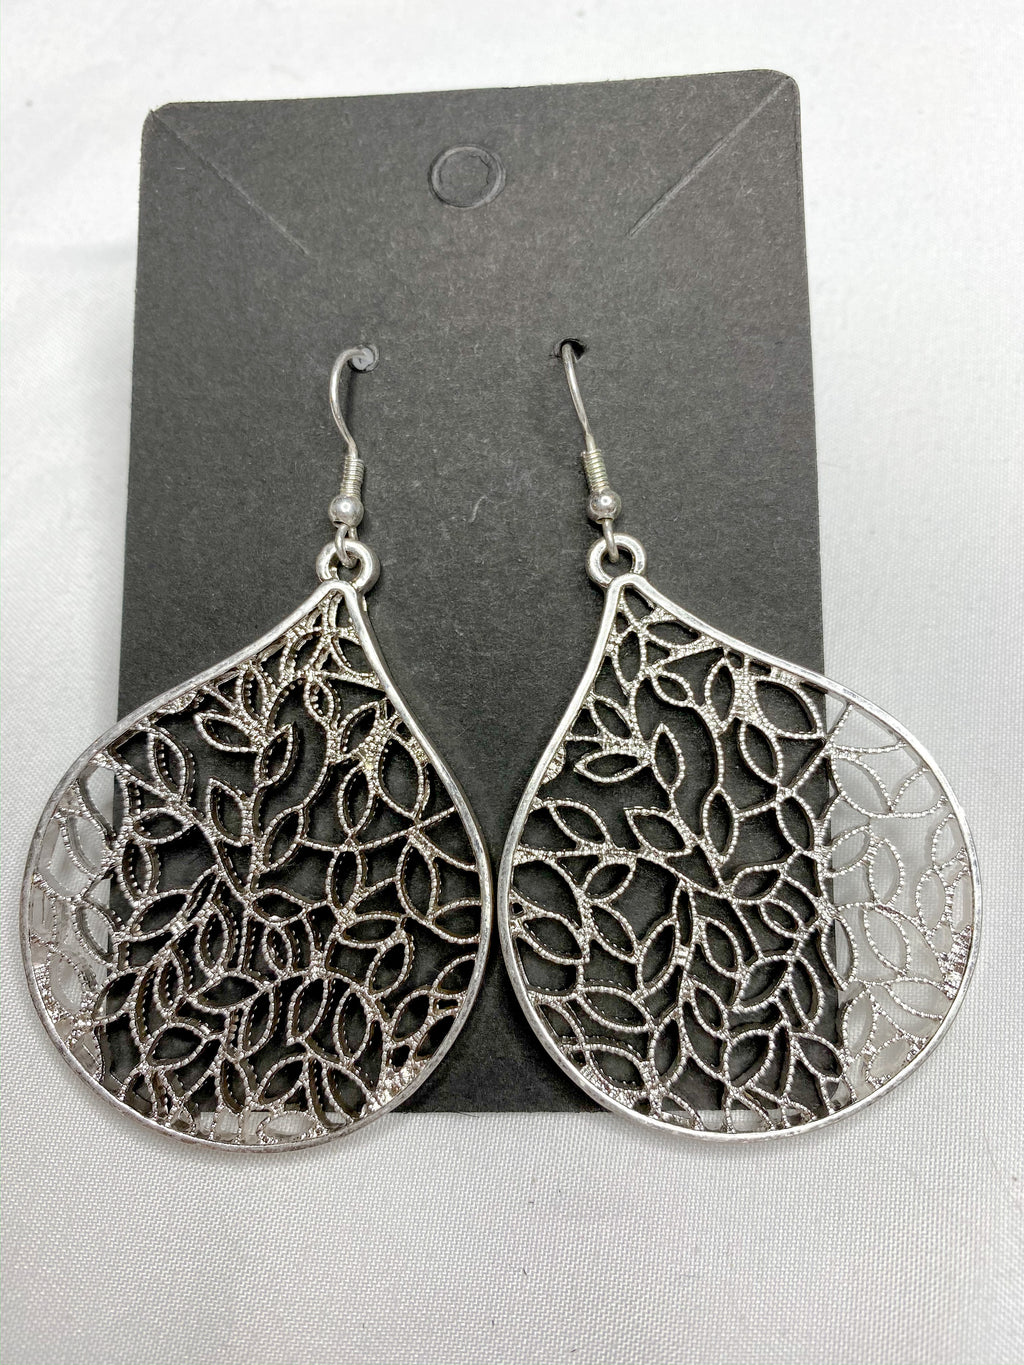 Worn Silver Leaf Earrings